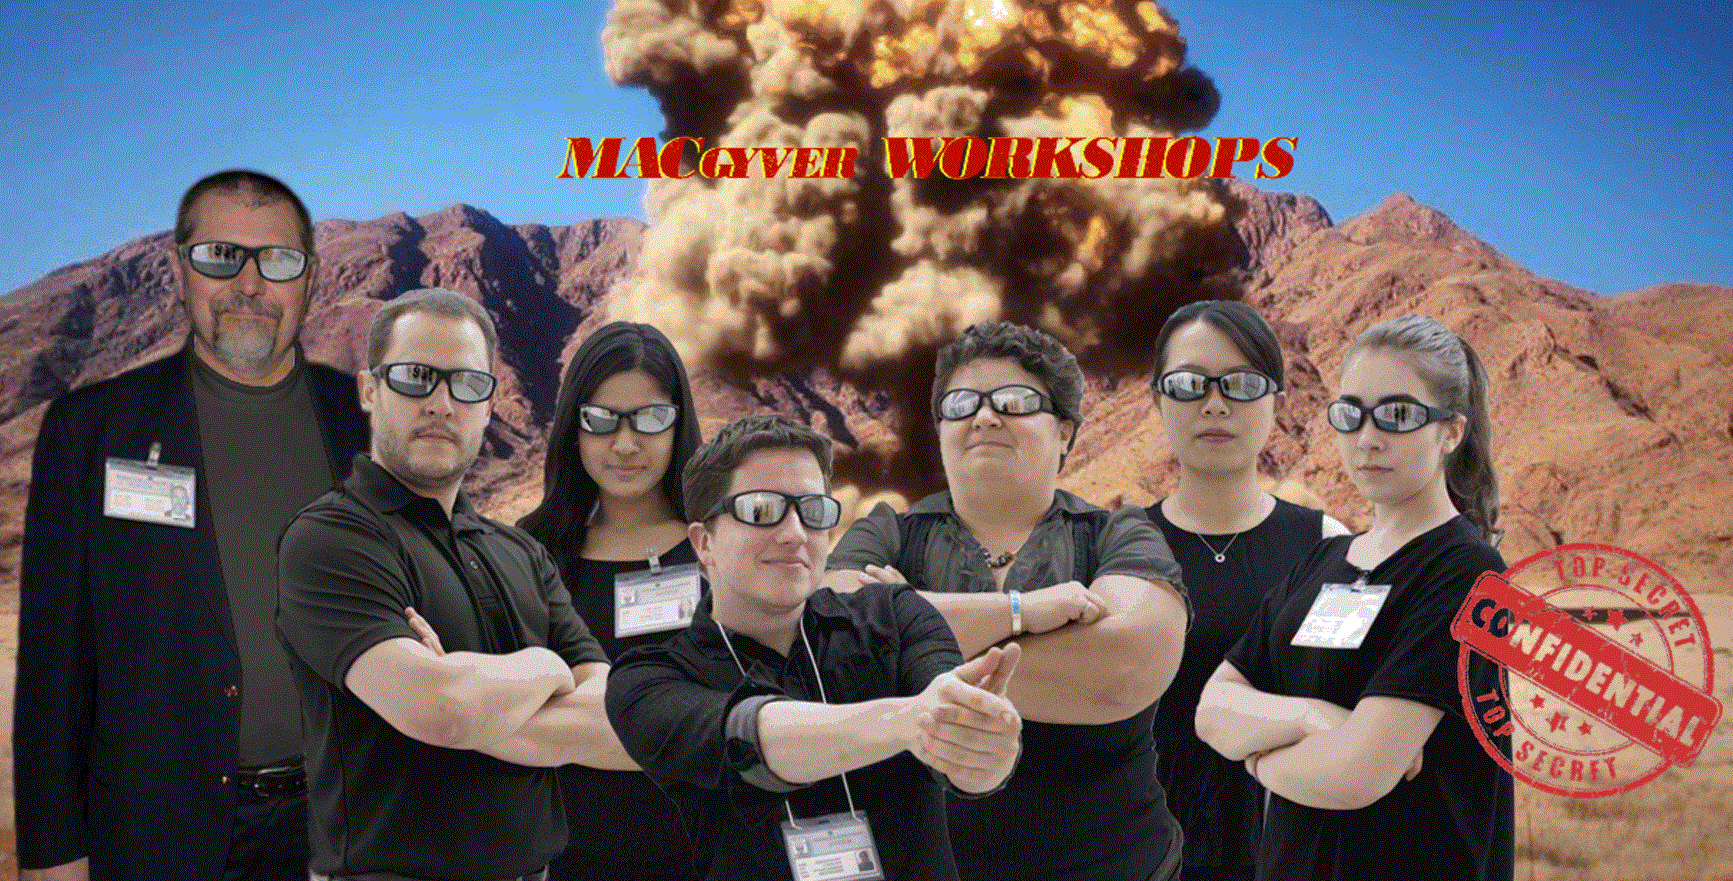 MACgyver Workshops